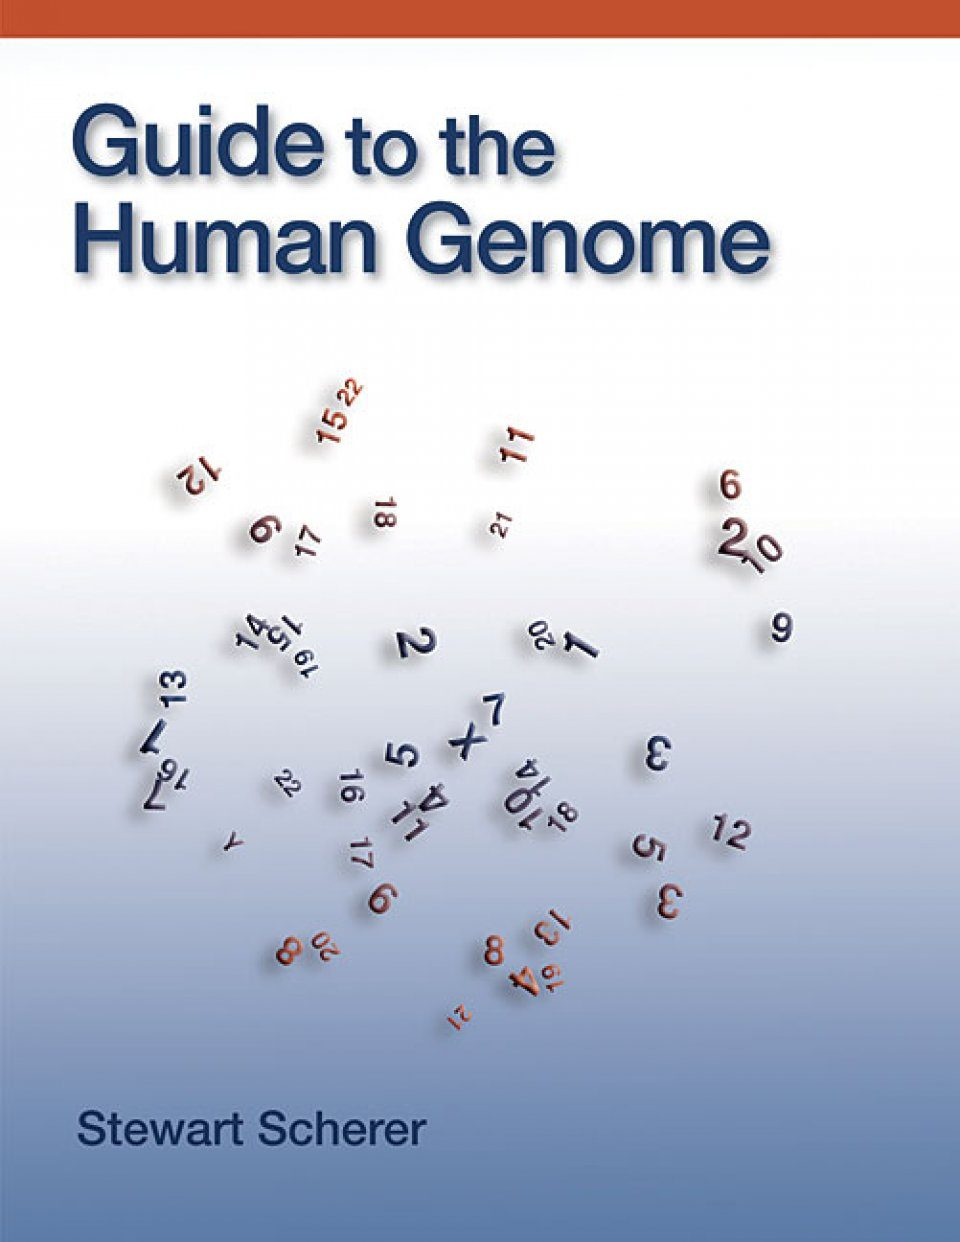 Guide to the Human Genome